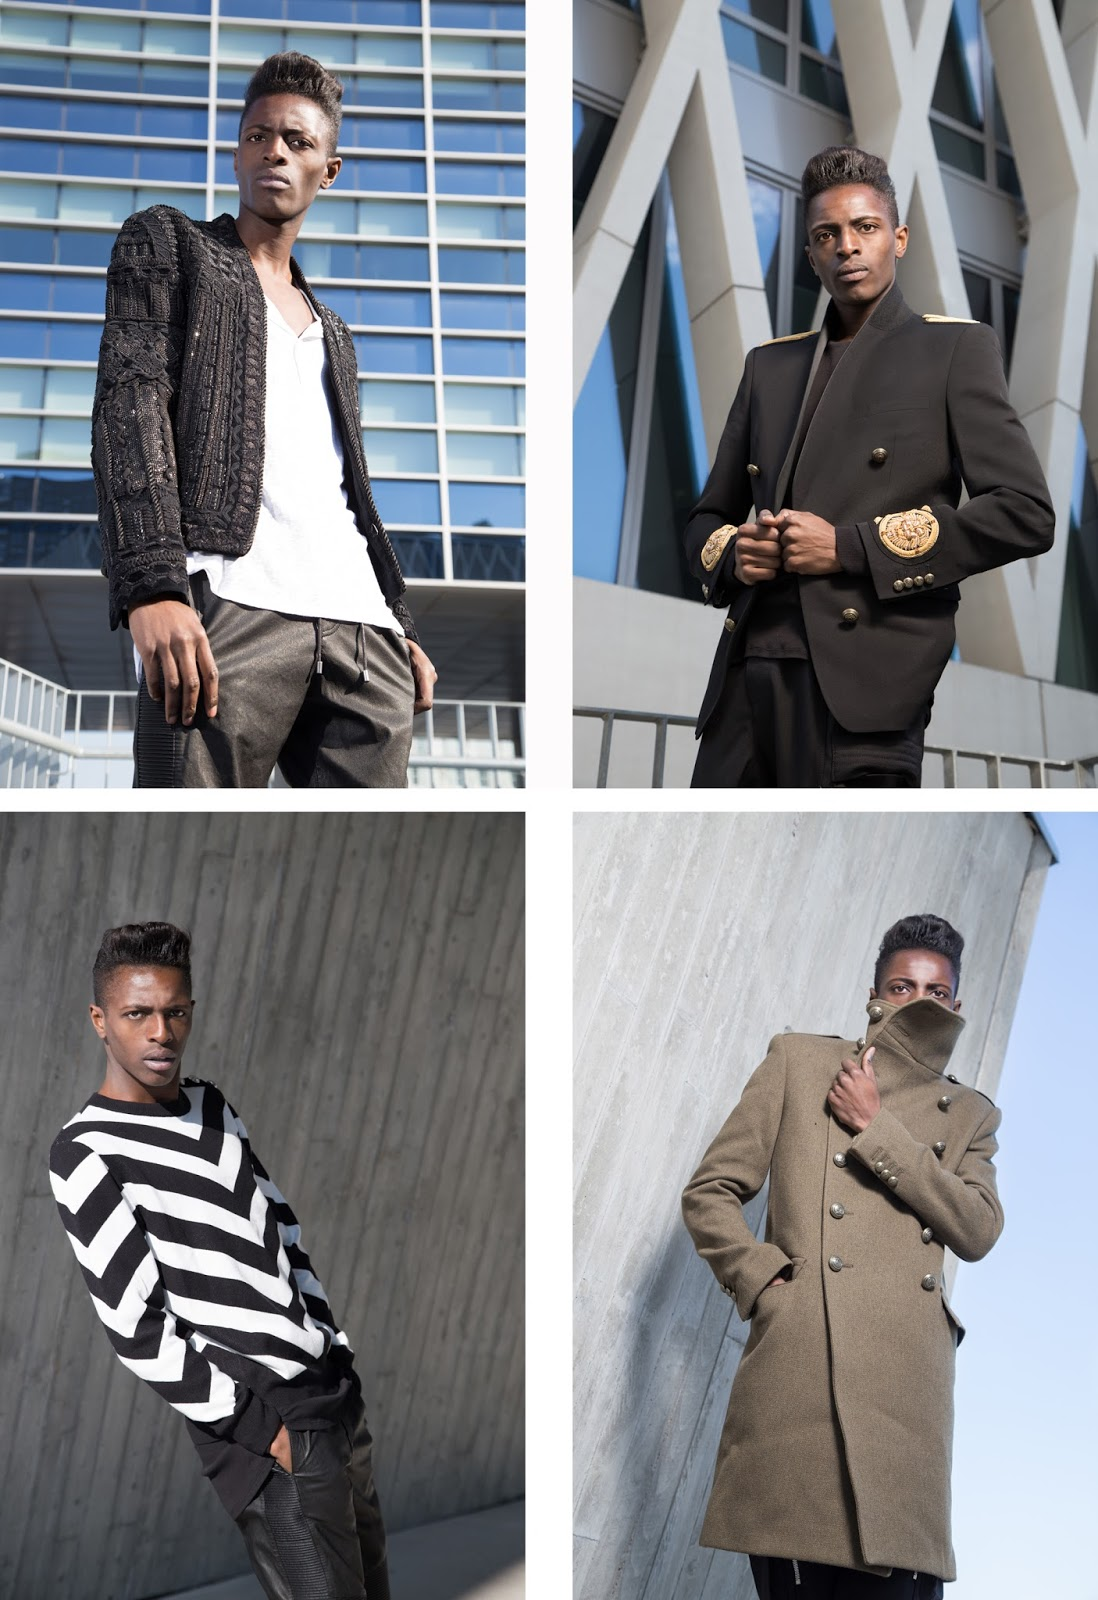 Introducing you Balmain x H&M men's collection + street style guide for Balmain x H&M men's collection written by jonthegold / photography by HOYmedia ( antwerp )